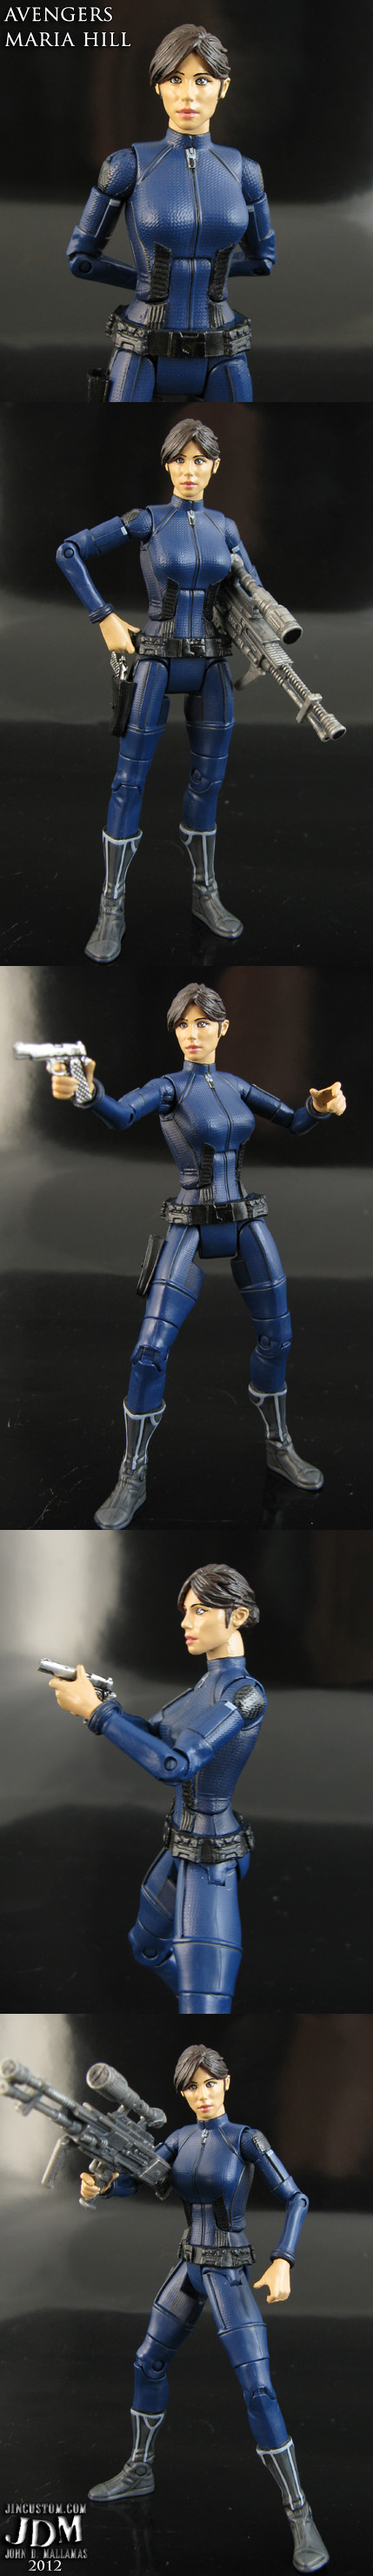 Avengers Commander Maria Hill figure by Jin-Saotome